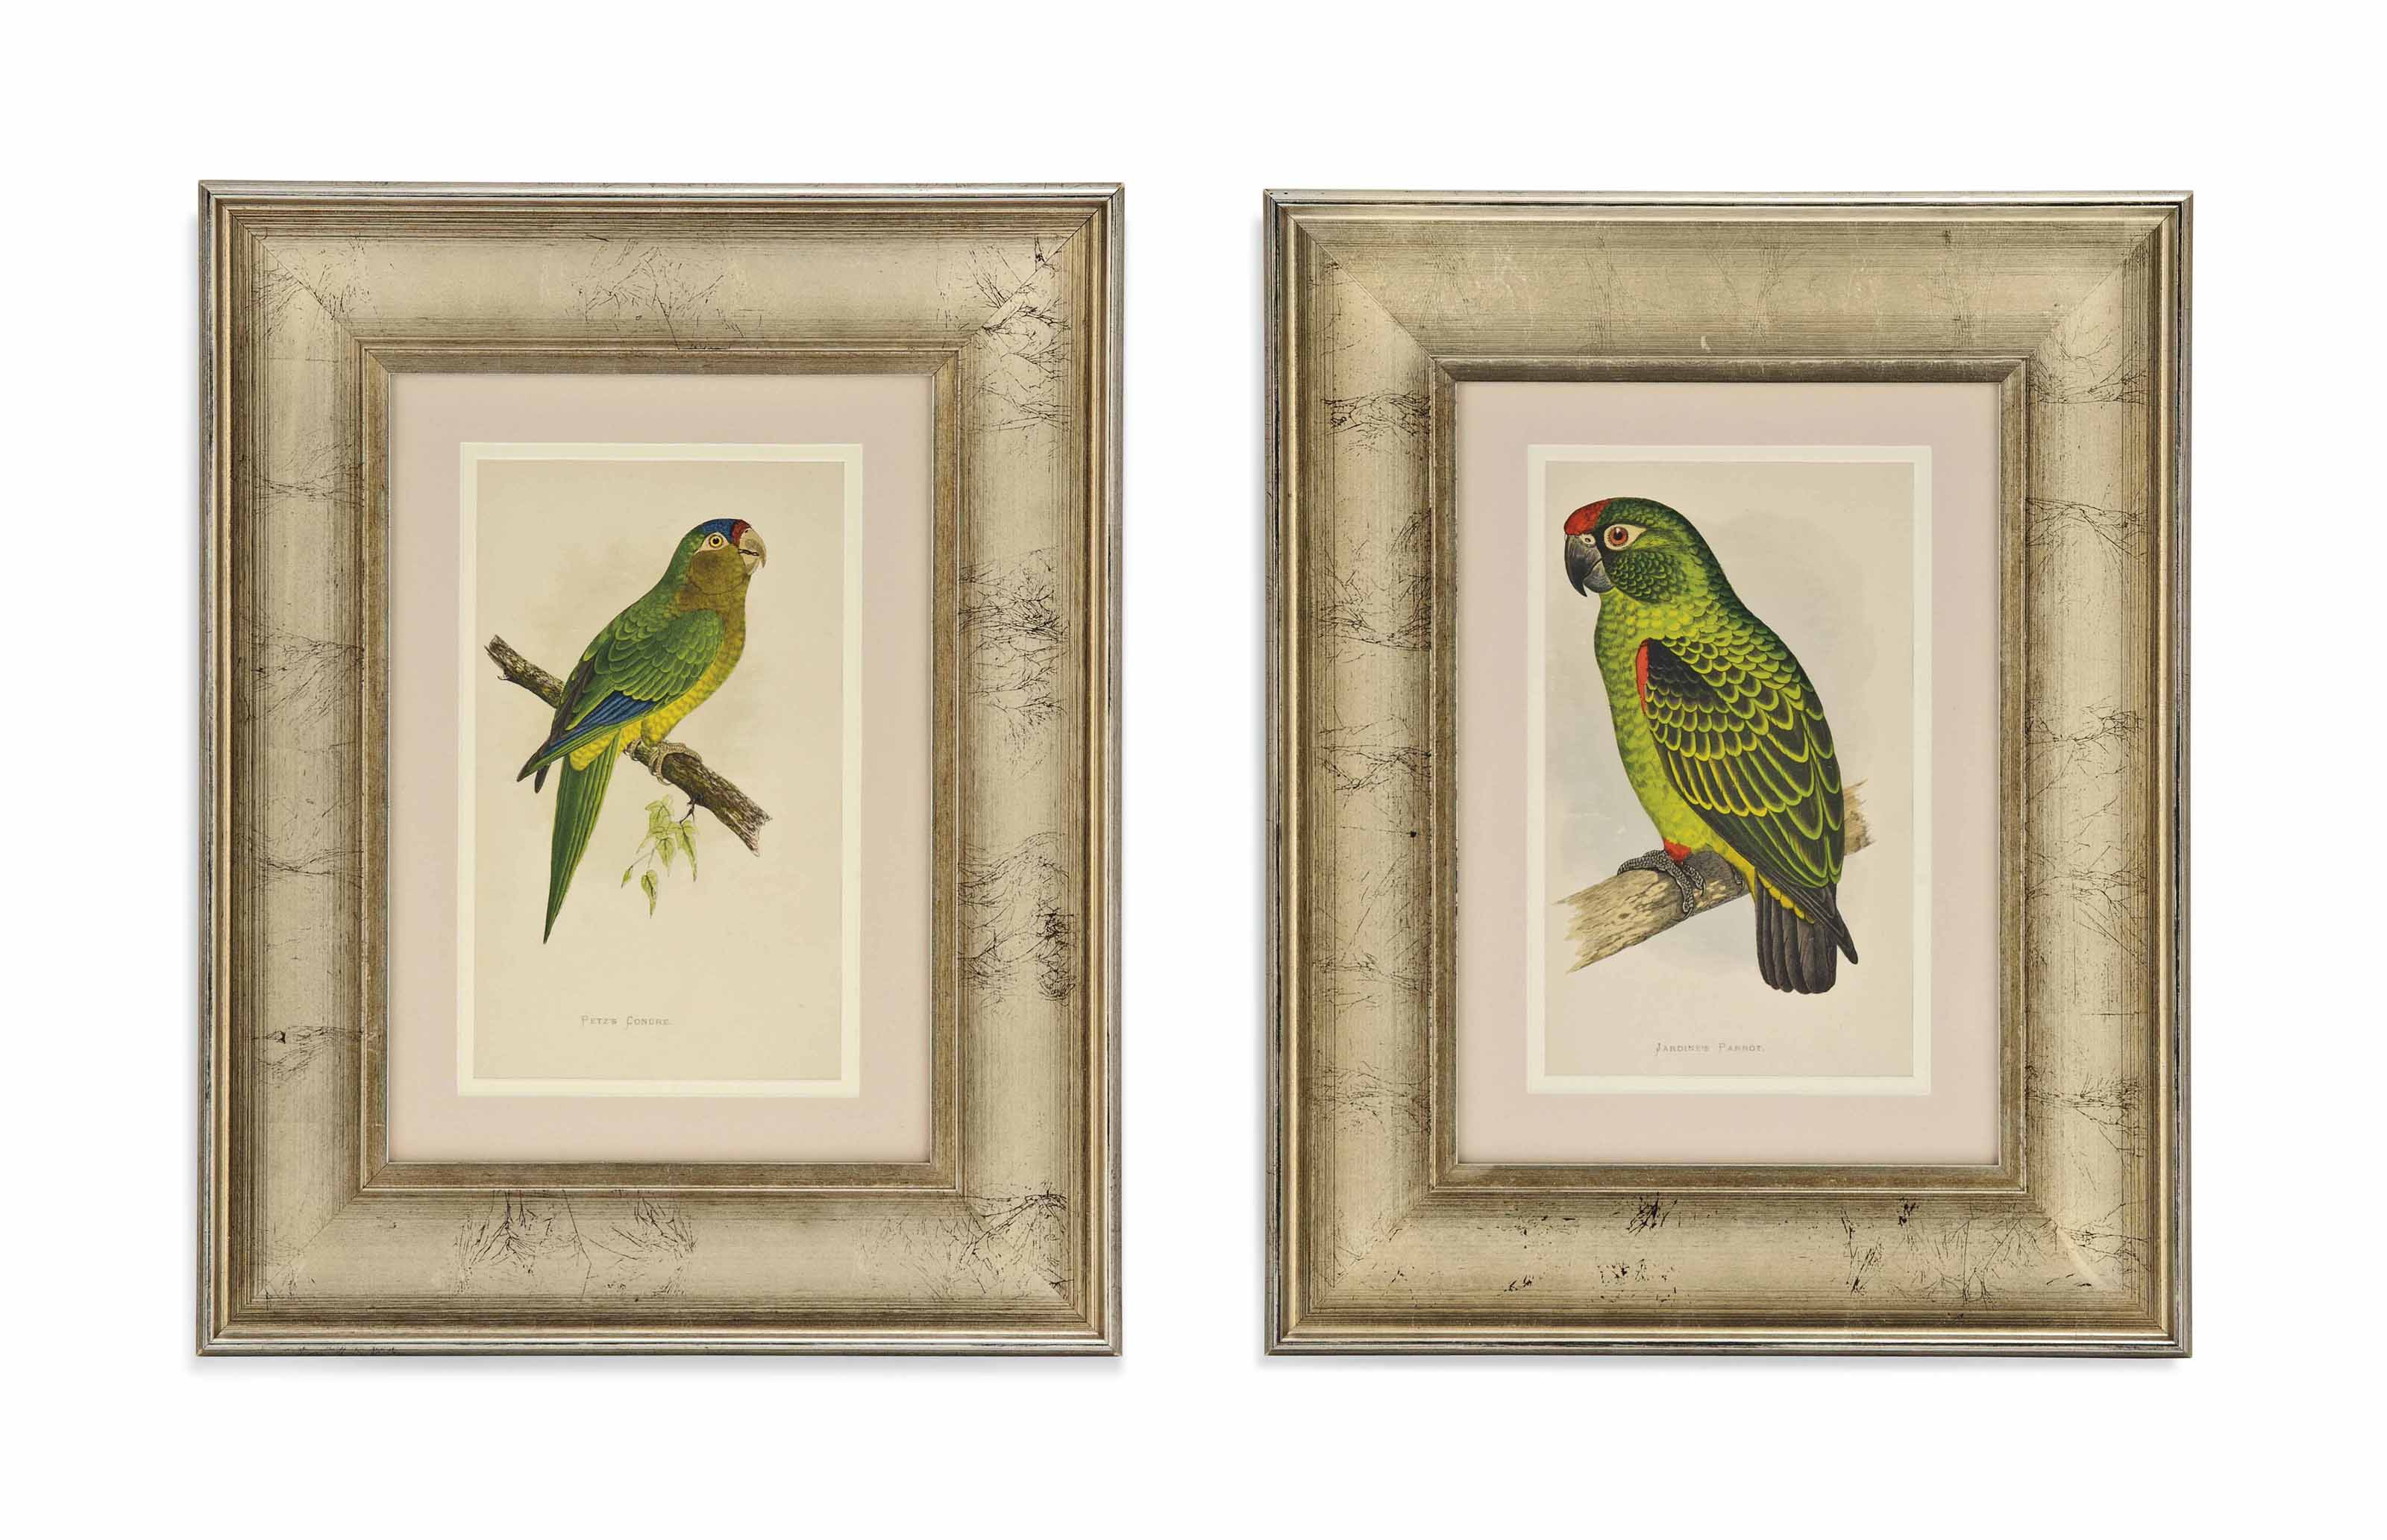 TWELVE COLOURED ENGRAVINGS OF PARROTS